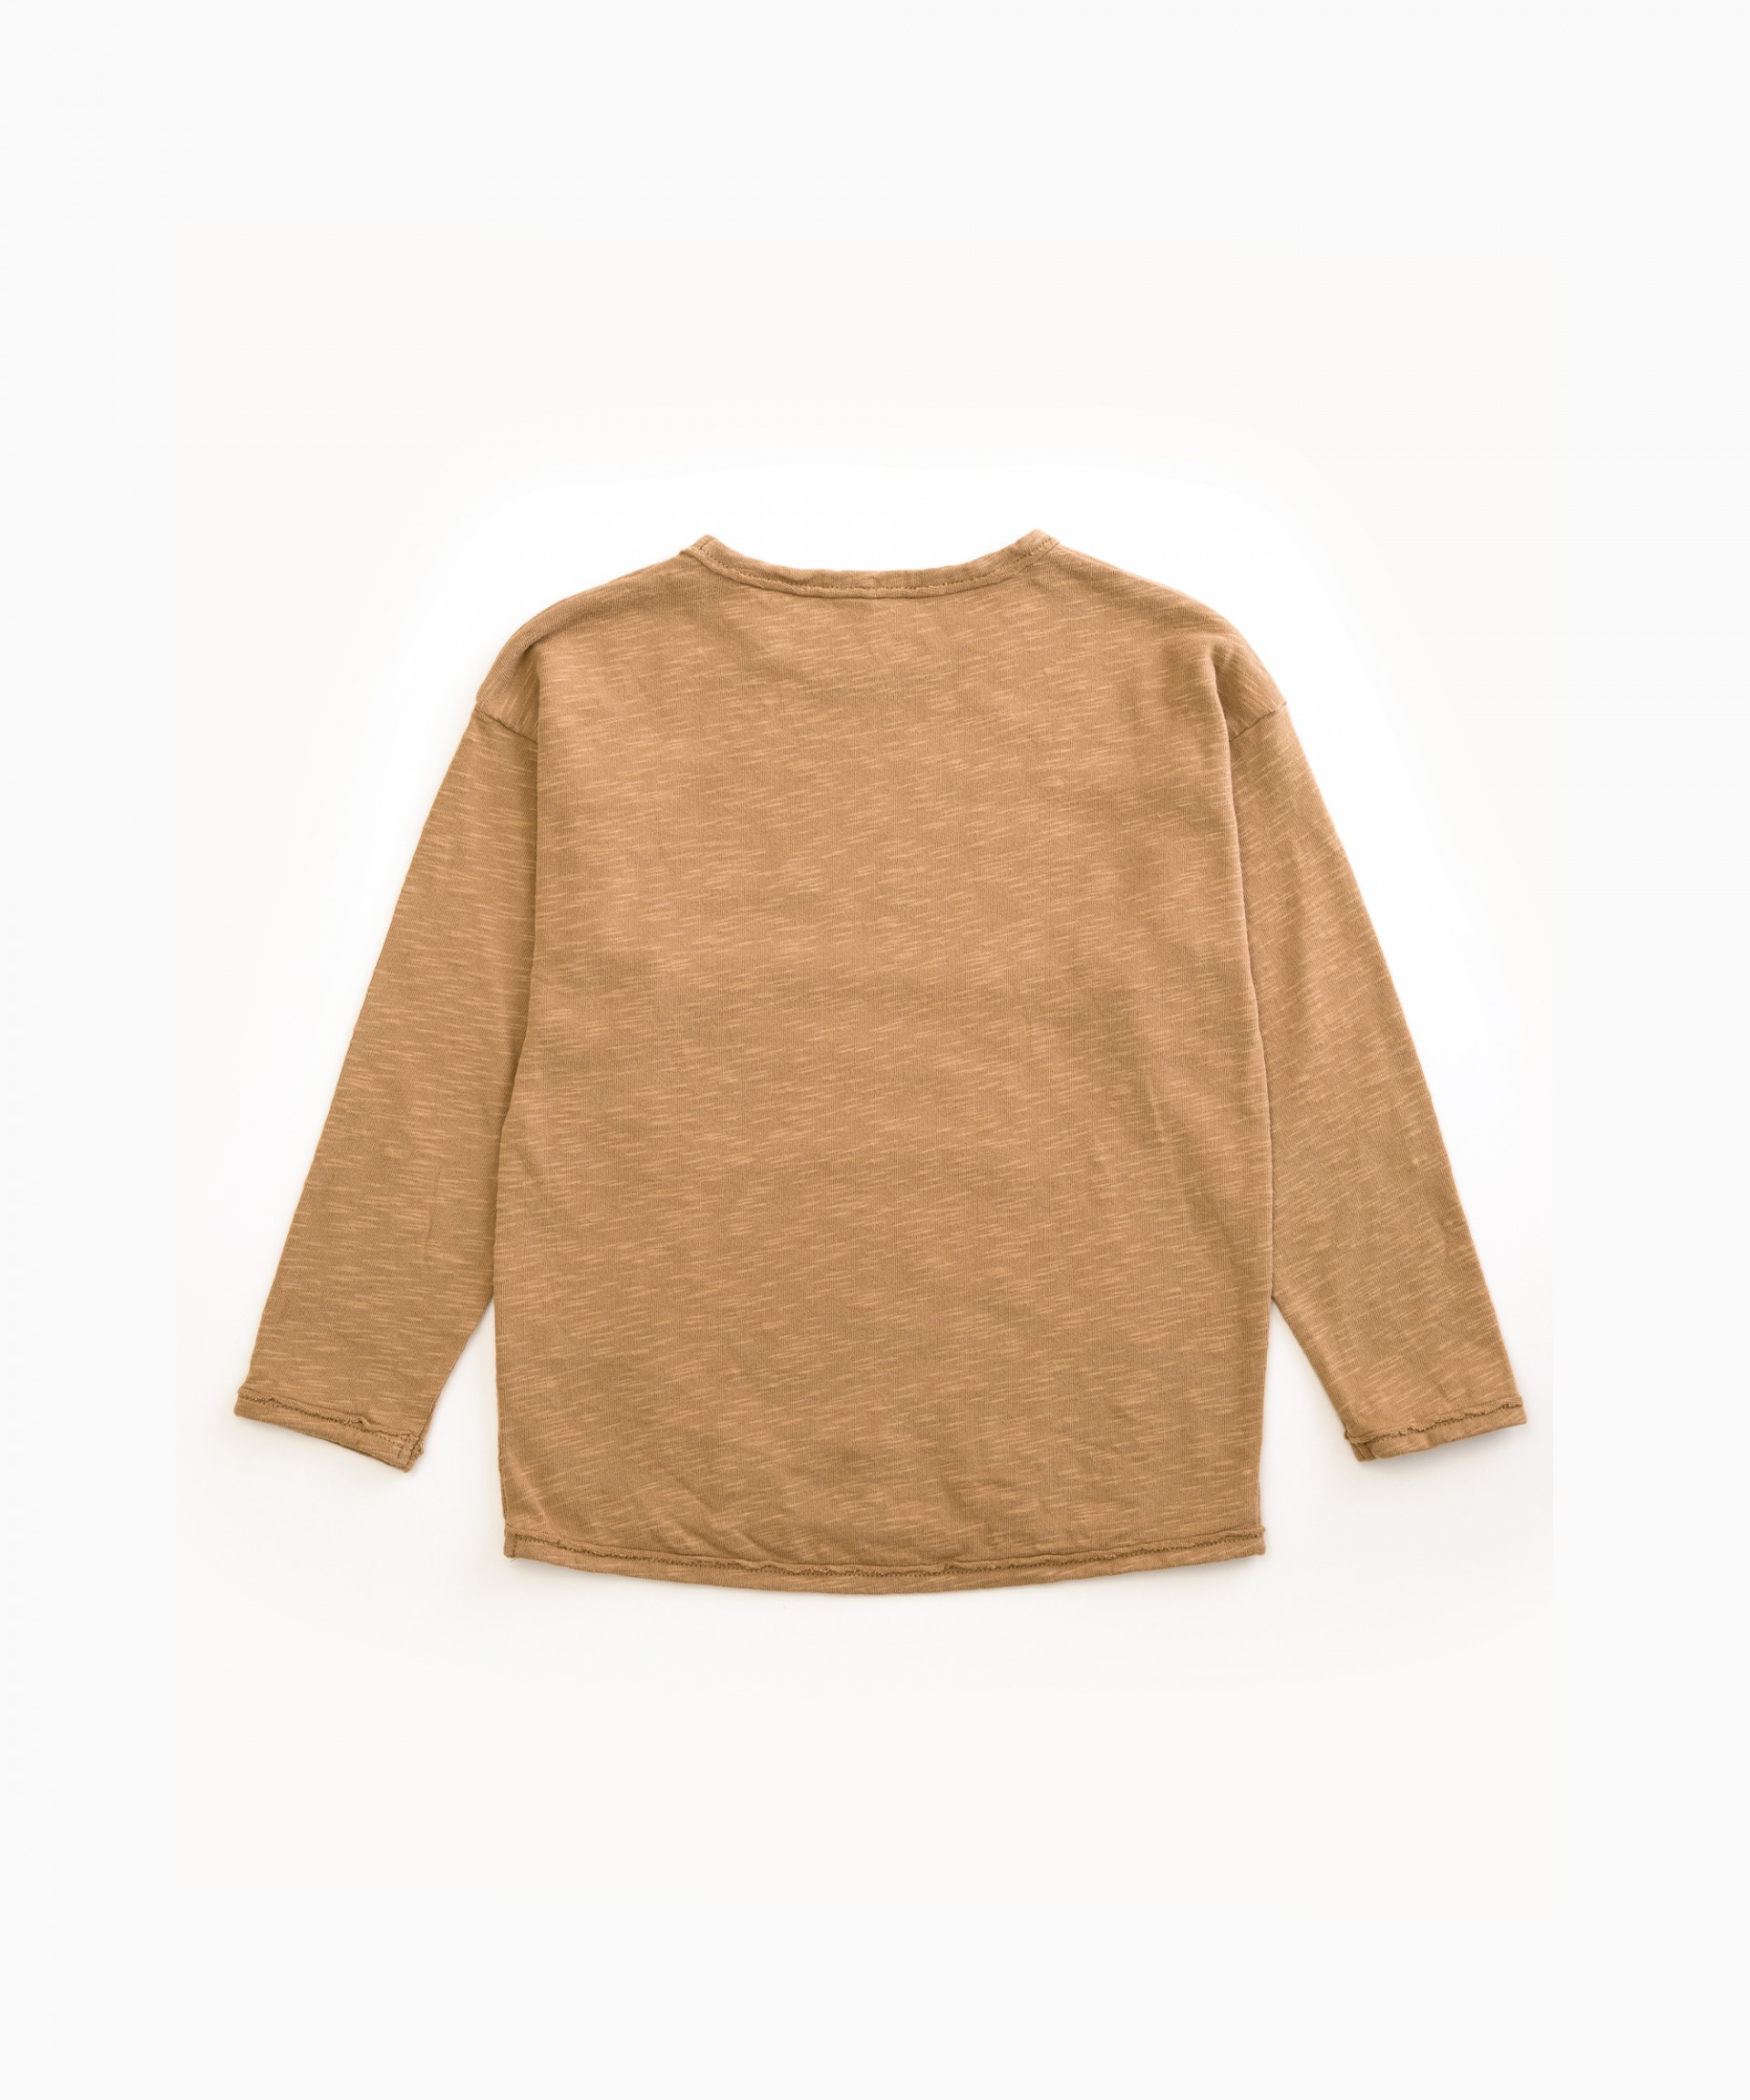 T-shirt in organic cotton with acorns | Woodwork